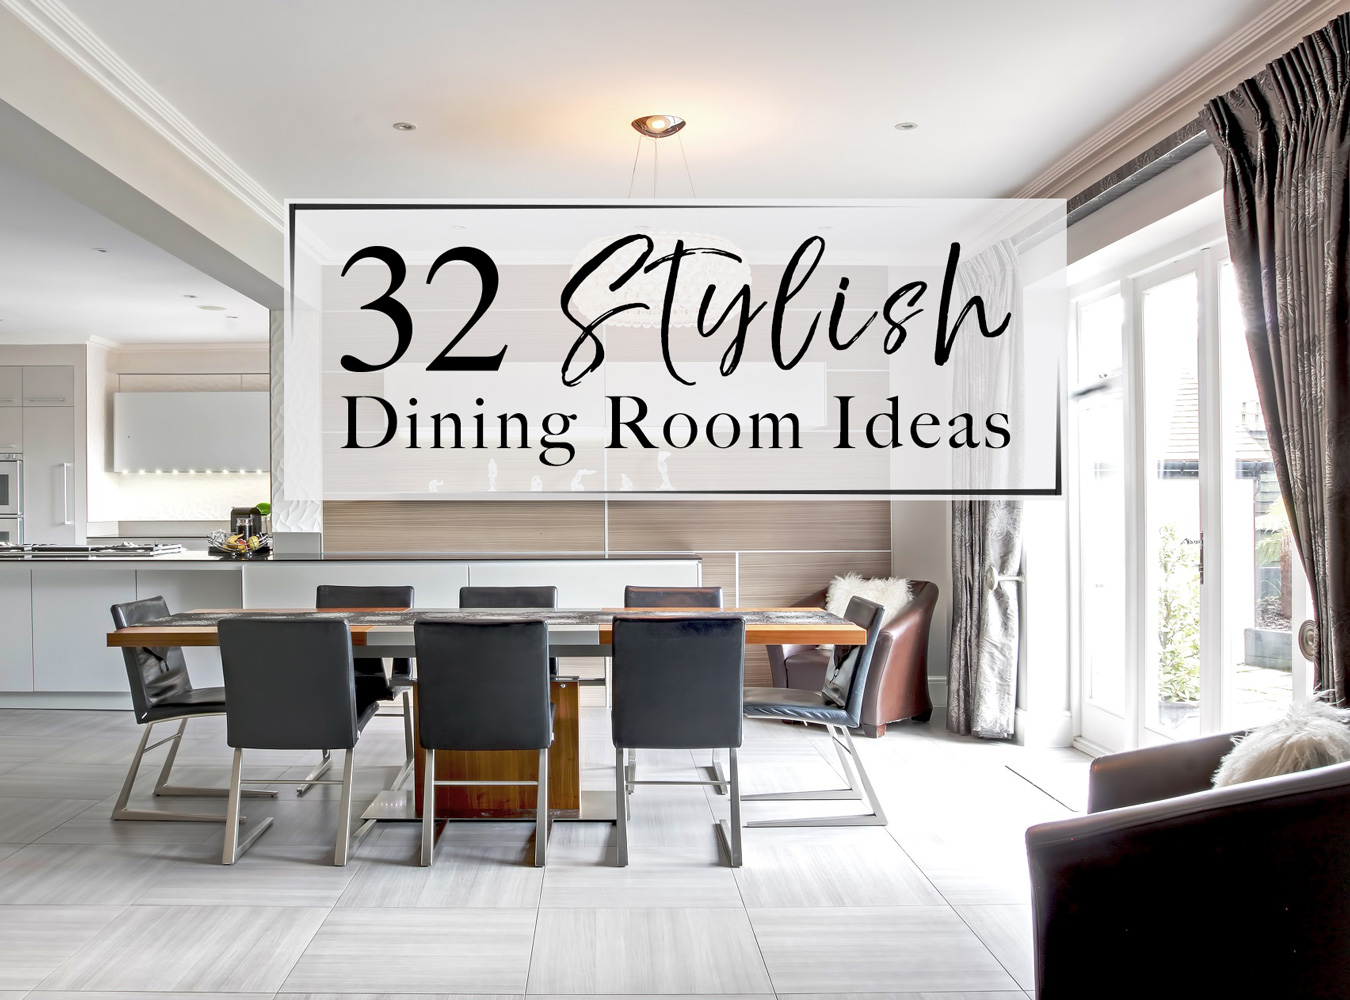 Best Dining Room Design Ideas: 32 Stylish Dining Room Ideas To Impress Your Dinner Guests